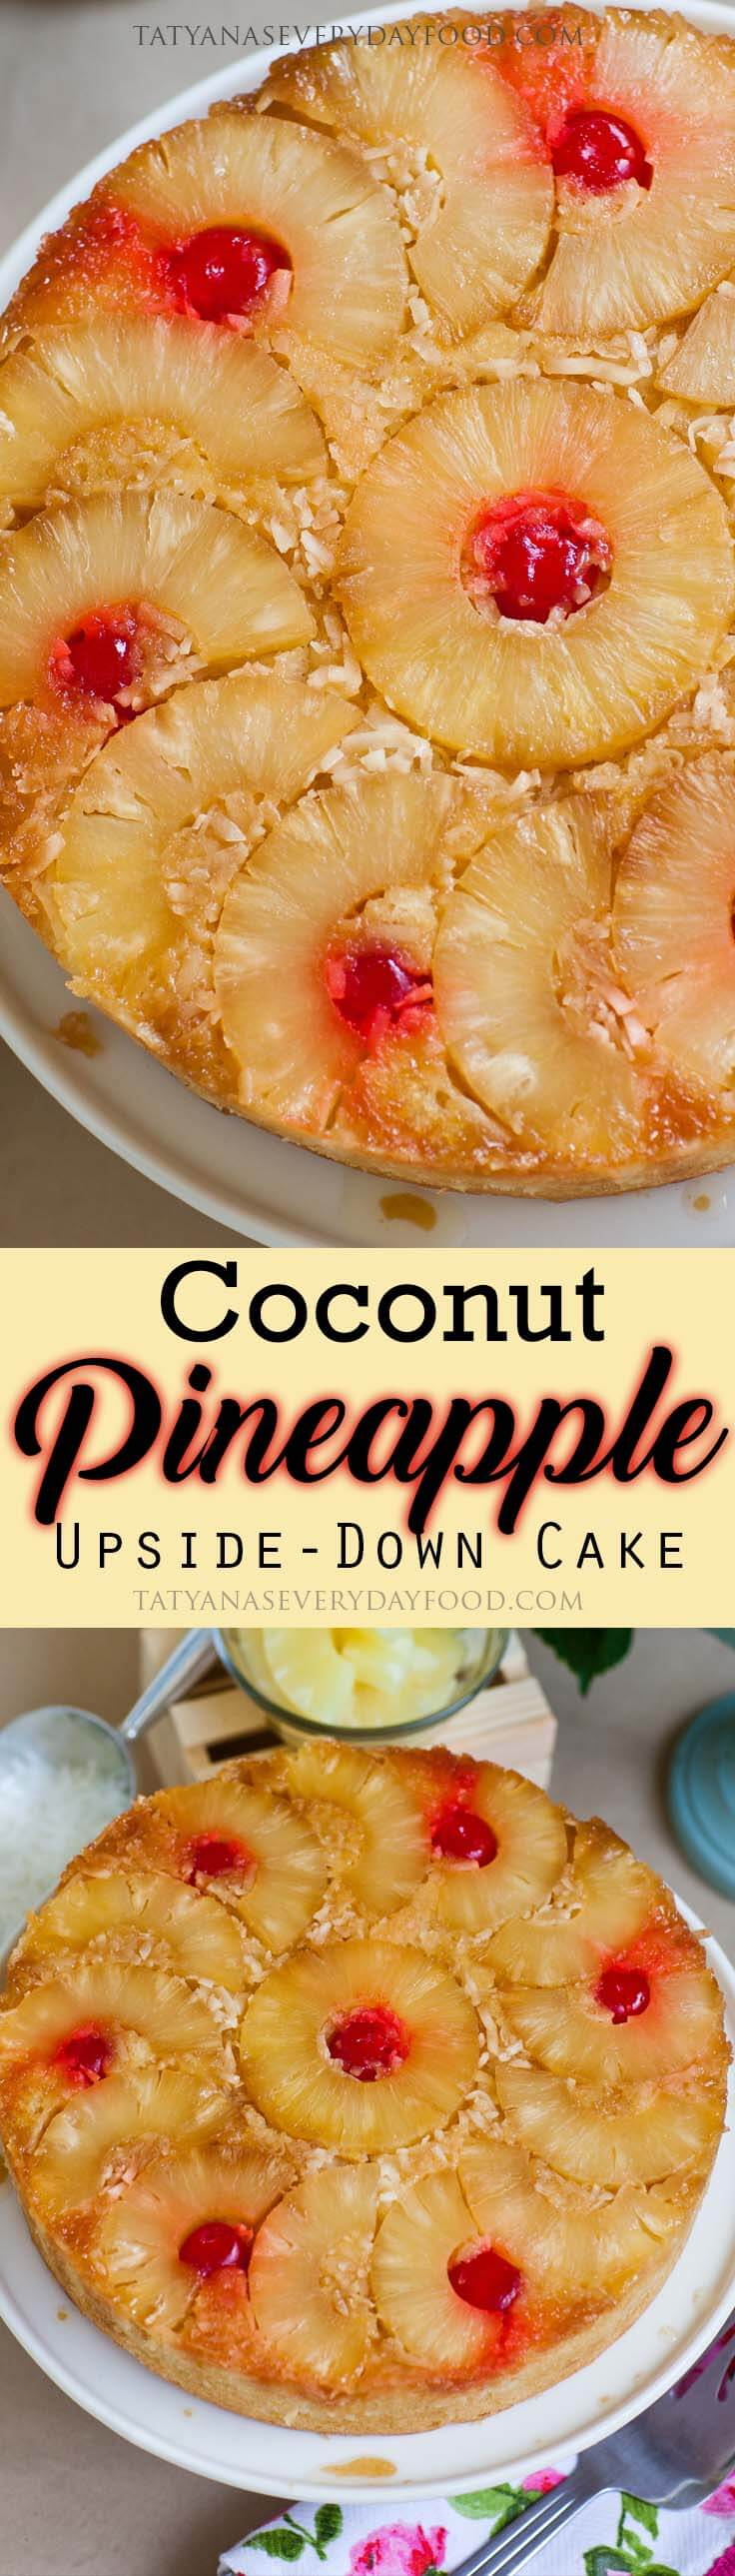 Coconut Pineapple Upside-Down Cake recipe with video